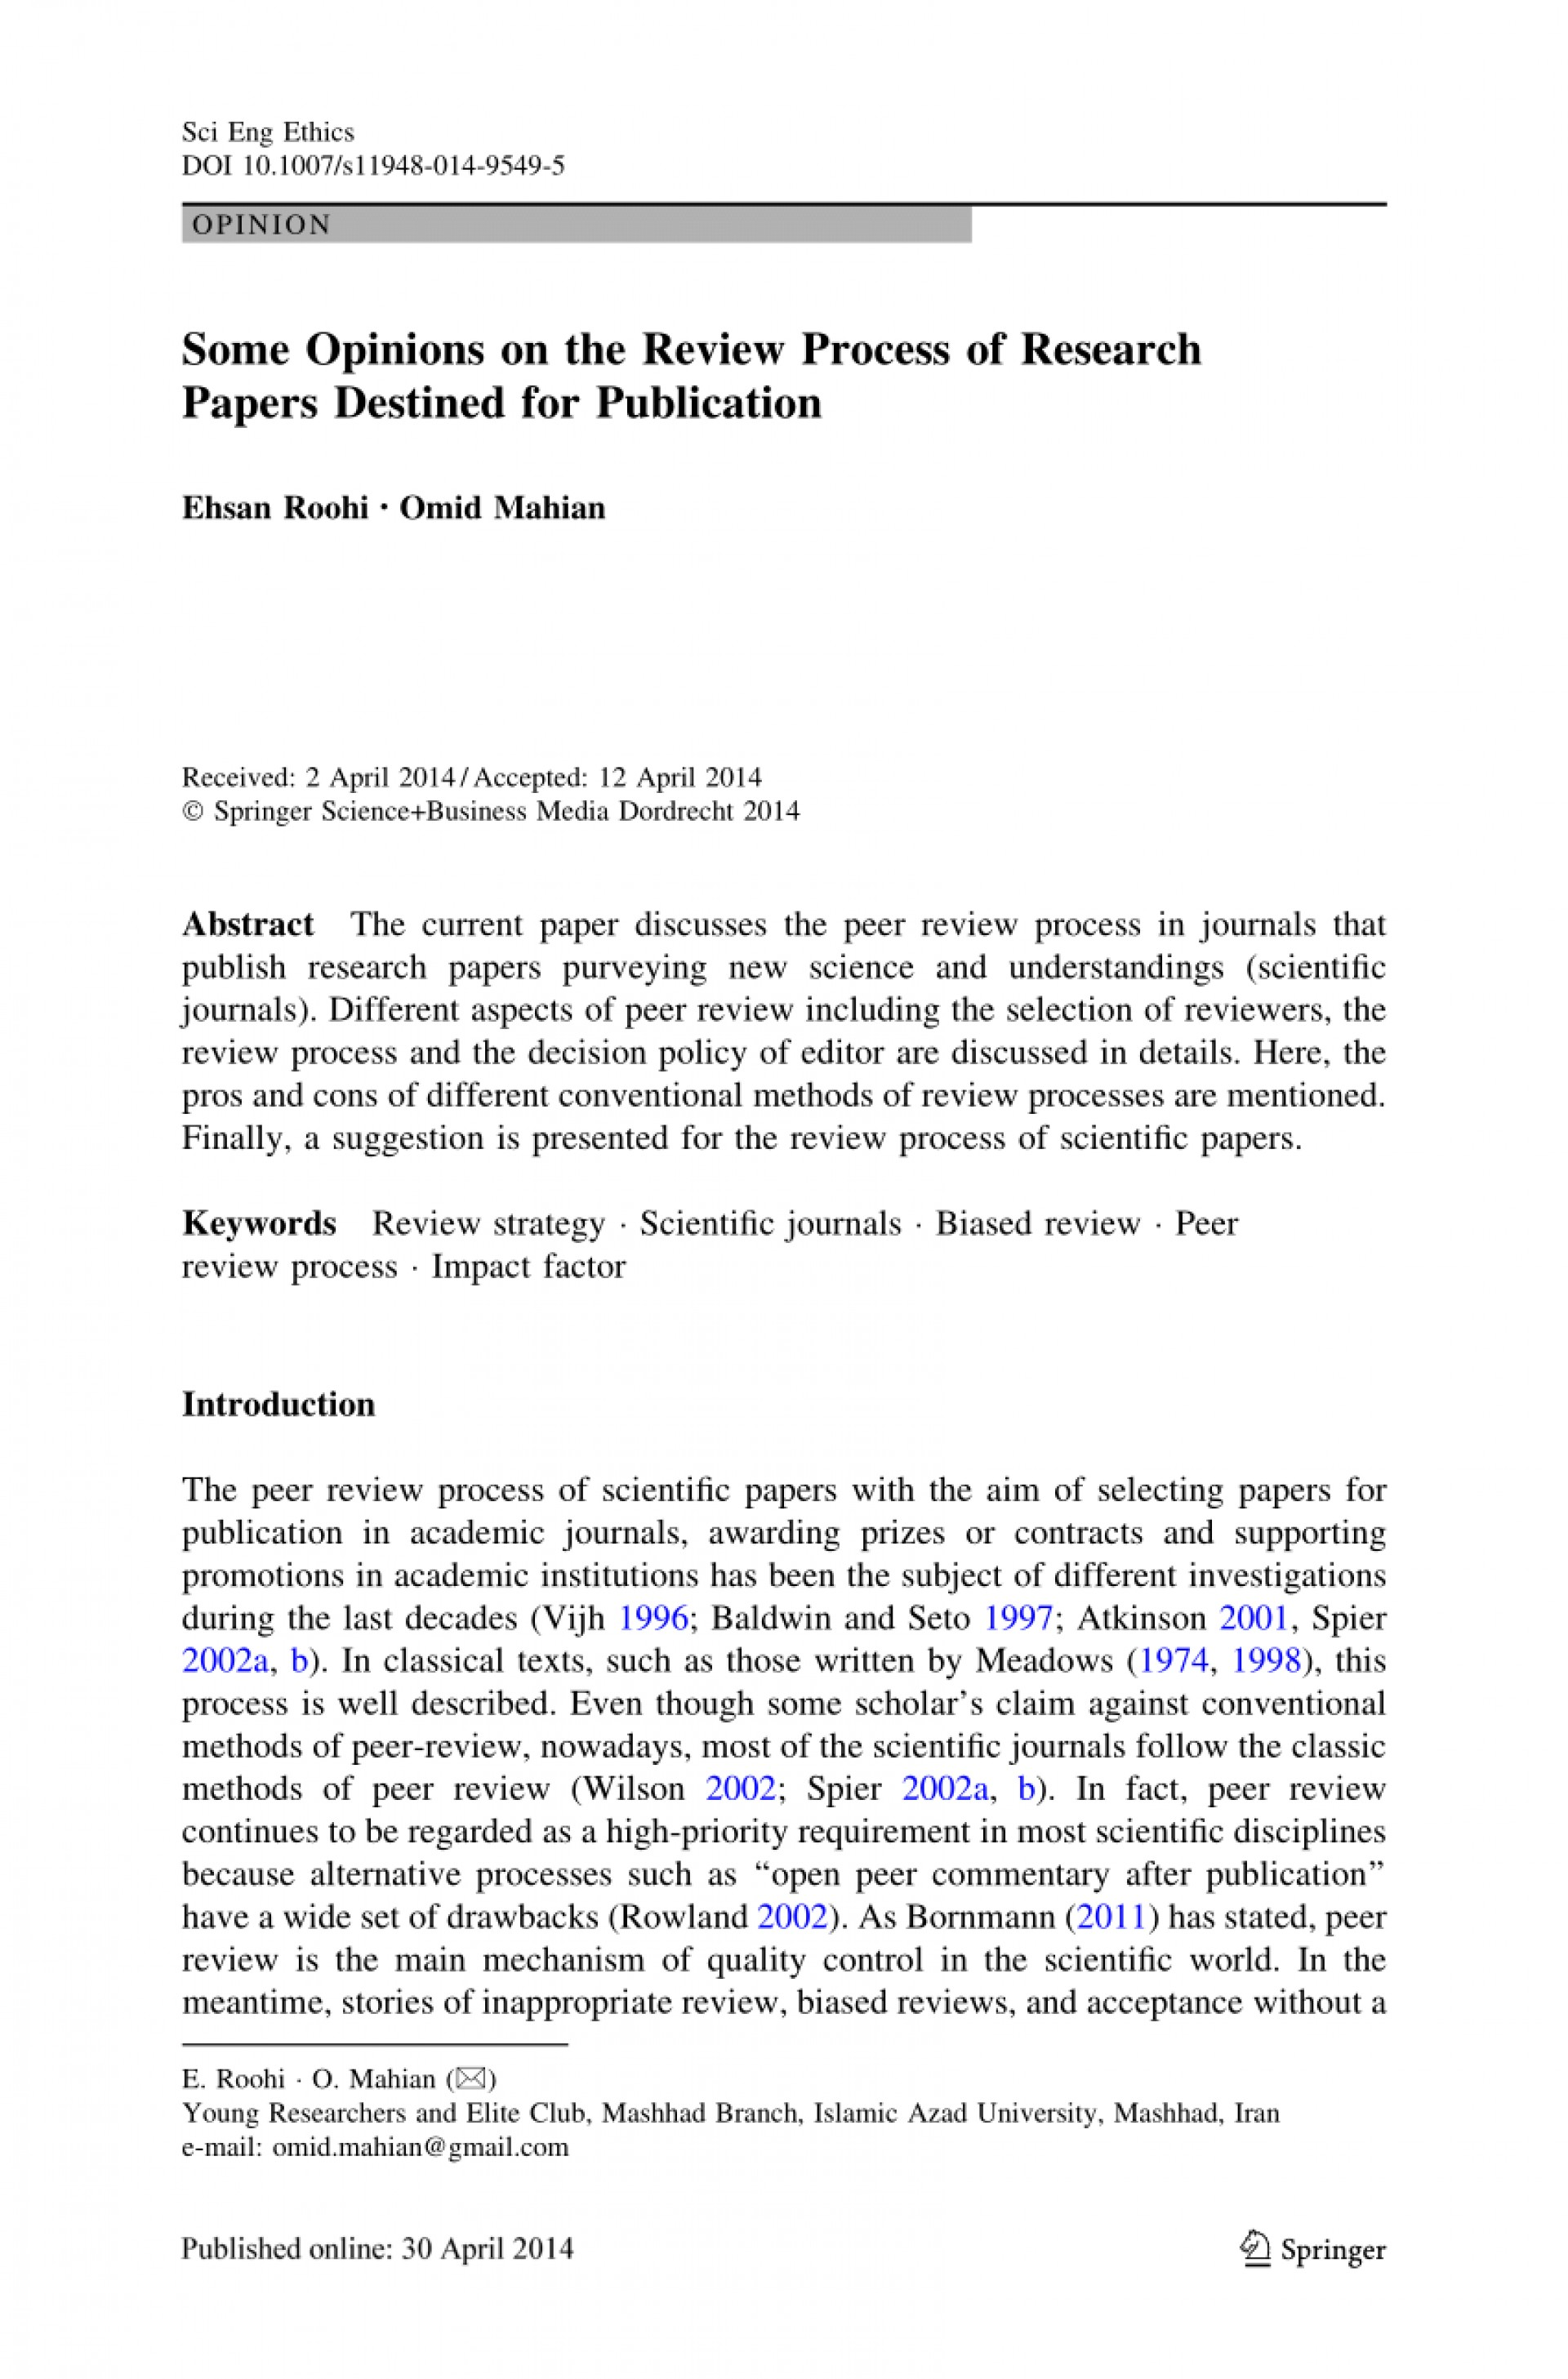 008 How To Publish Research Paper In Springer Papers Online Top Journal 1920